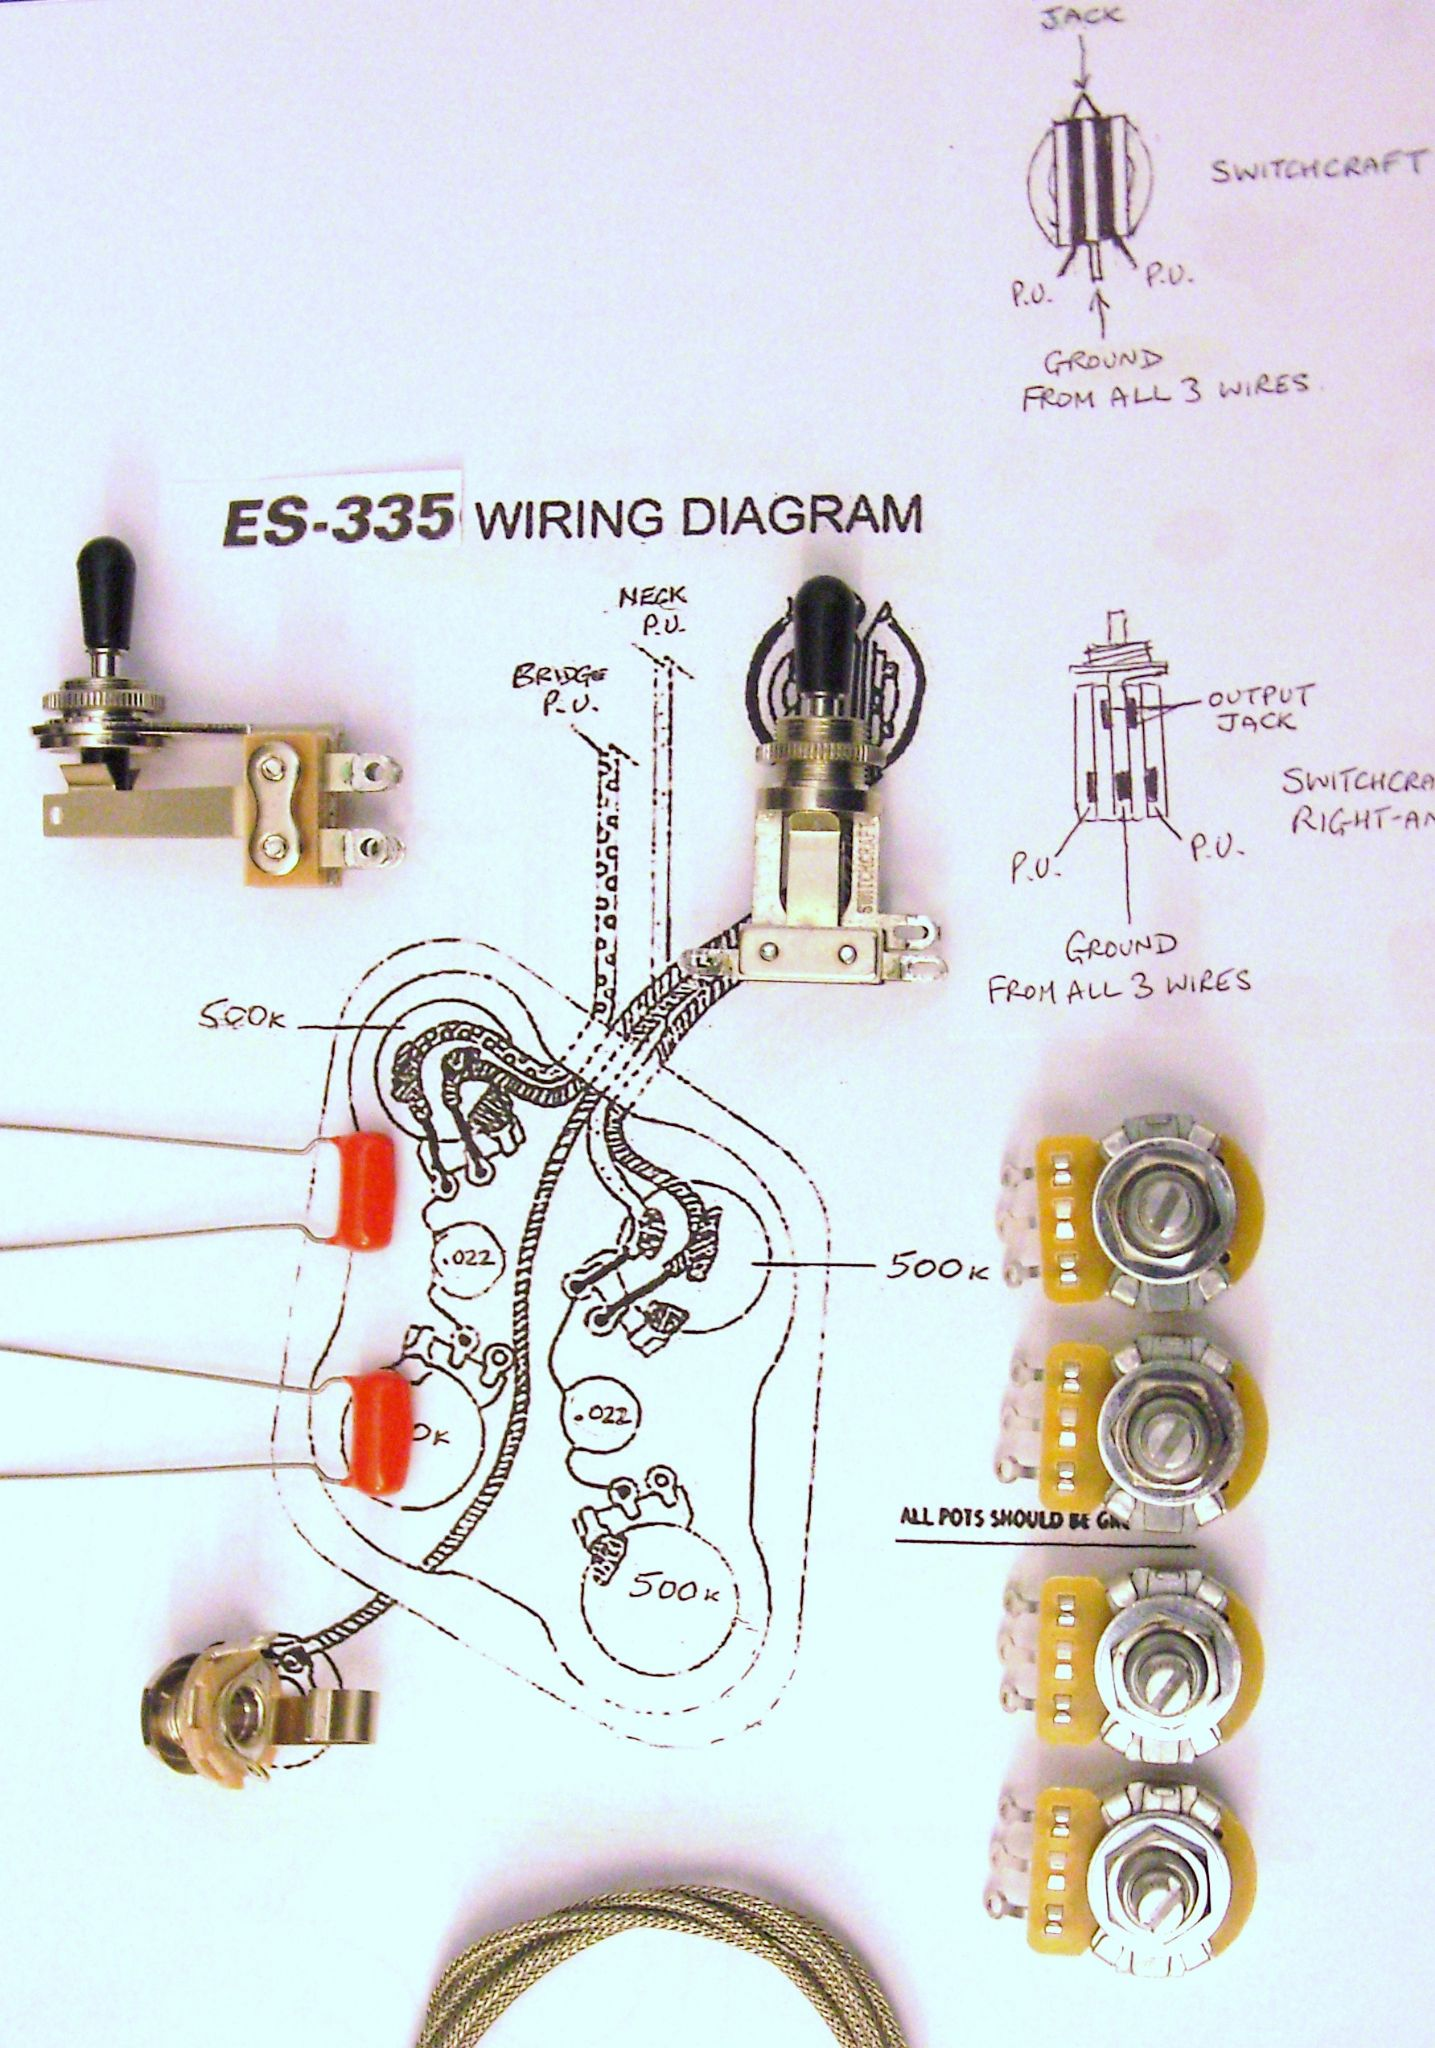 hight resolution of wiring kit for 335 with right angle switchcraft toggle switch wiring kit for 335 with right